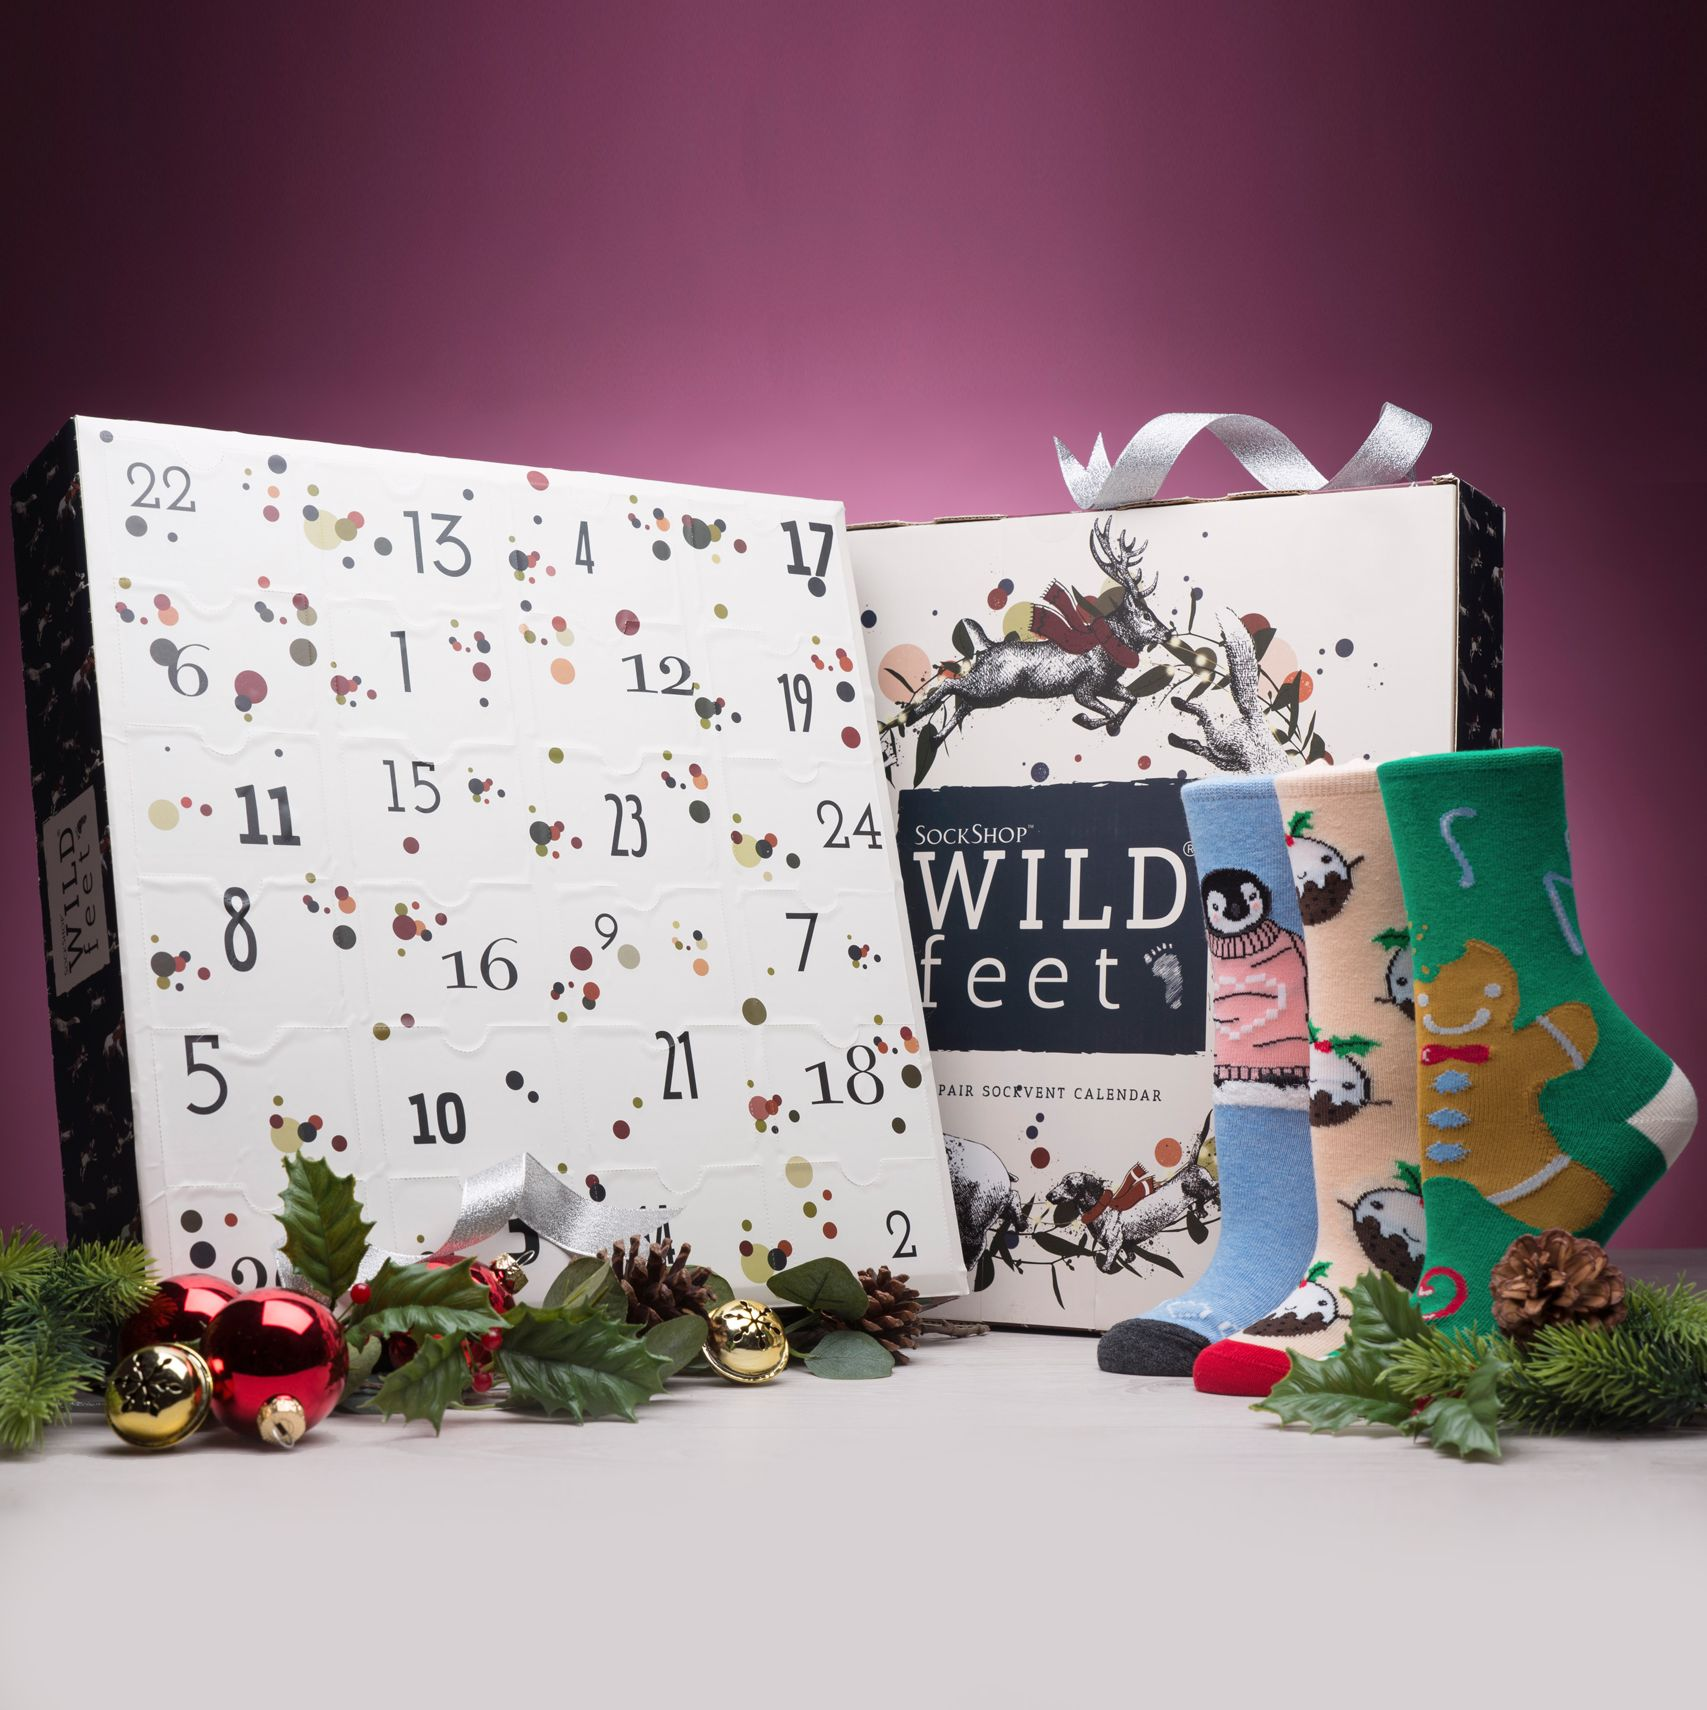 SockShop Wild Feet Christmas Advent Calendar